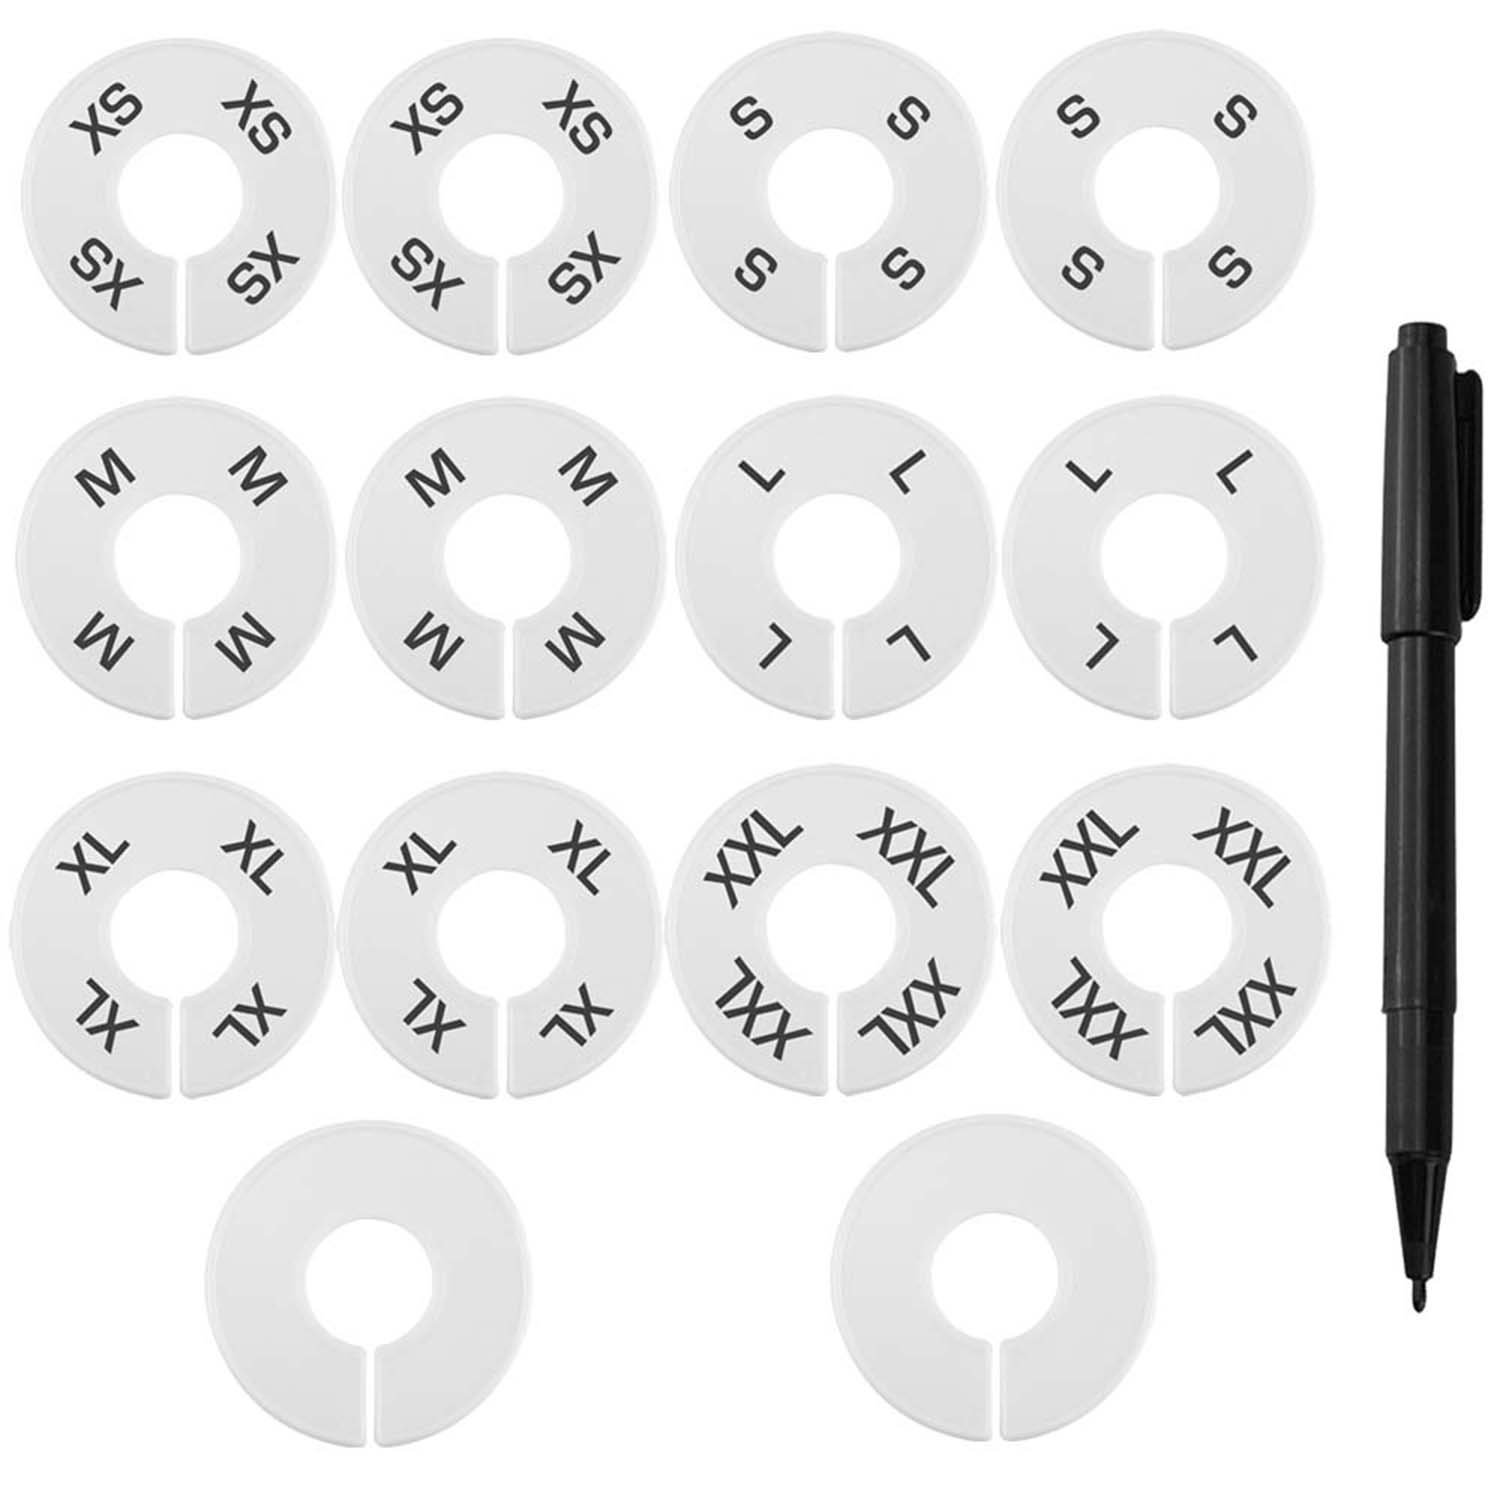 Blulu Clothing Size Dividers Closet Round Hangers Dividers 14 Pieces with Marker Pen, Blank and Size XS to XXL